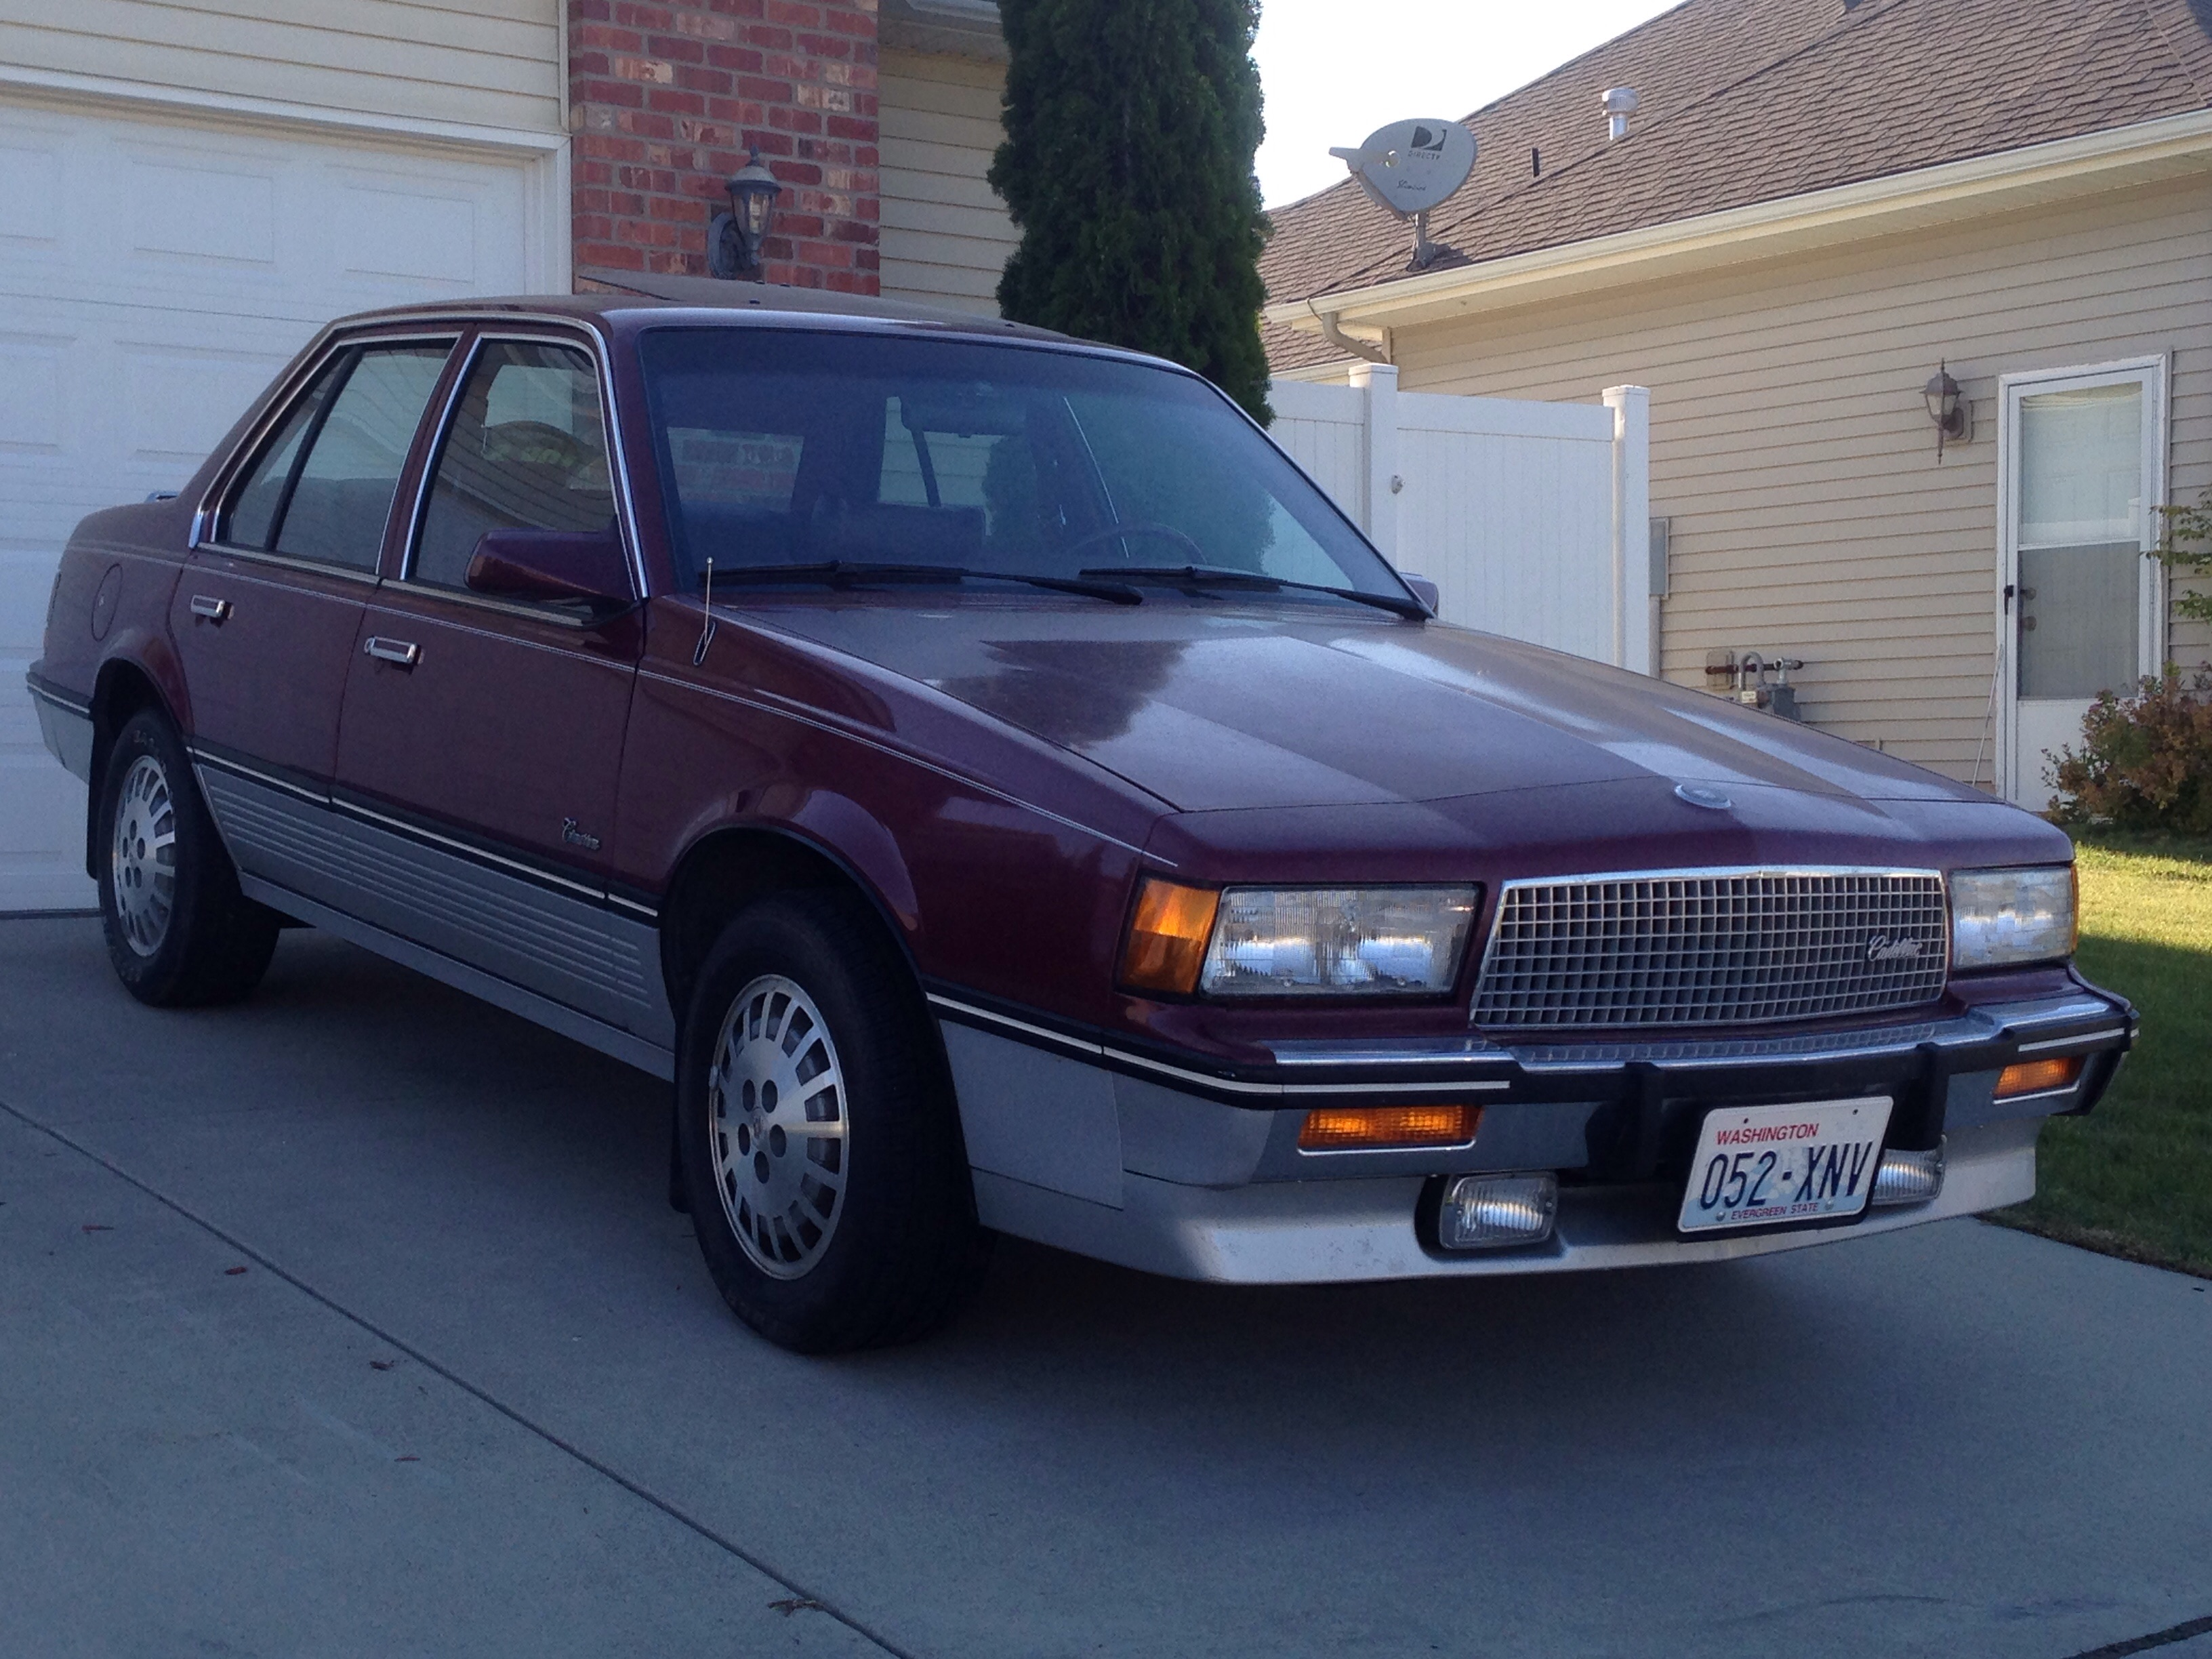 Cohort Clic: 1987-88 Cadillac Cimarron – Could This Be The Nicest